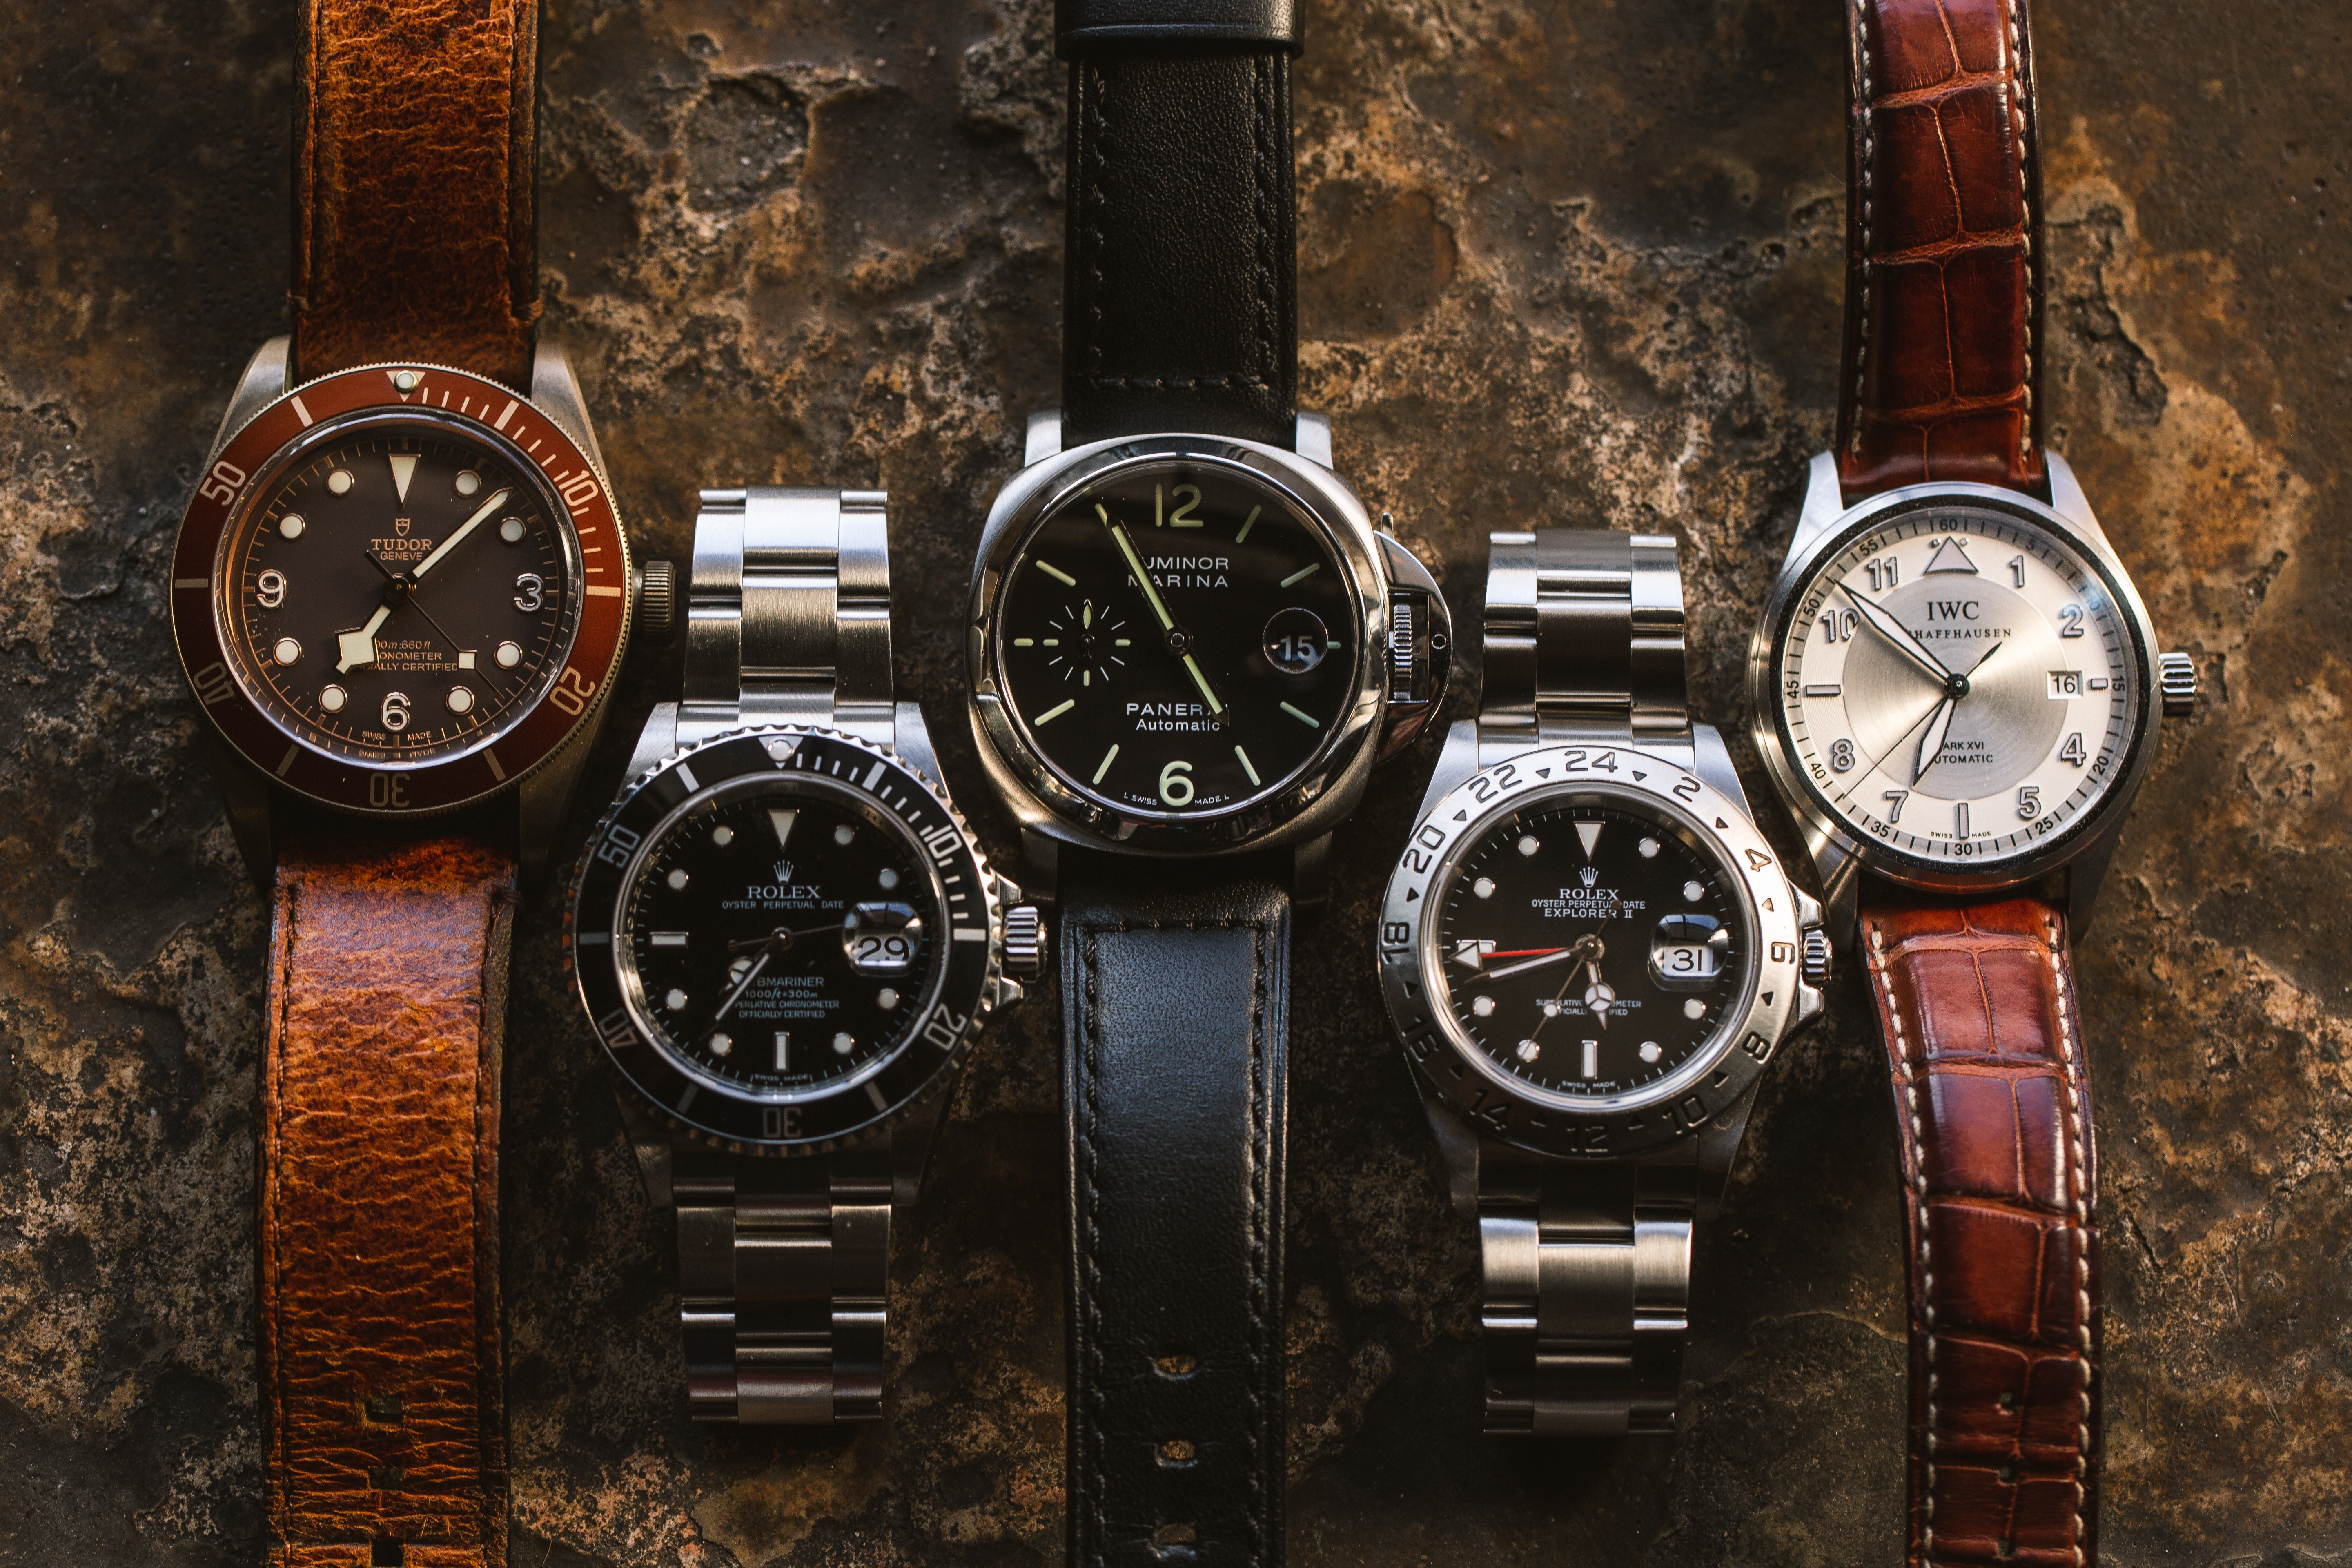 Watches from Crown and Caliber's Watchtoberfest